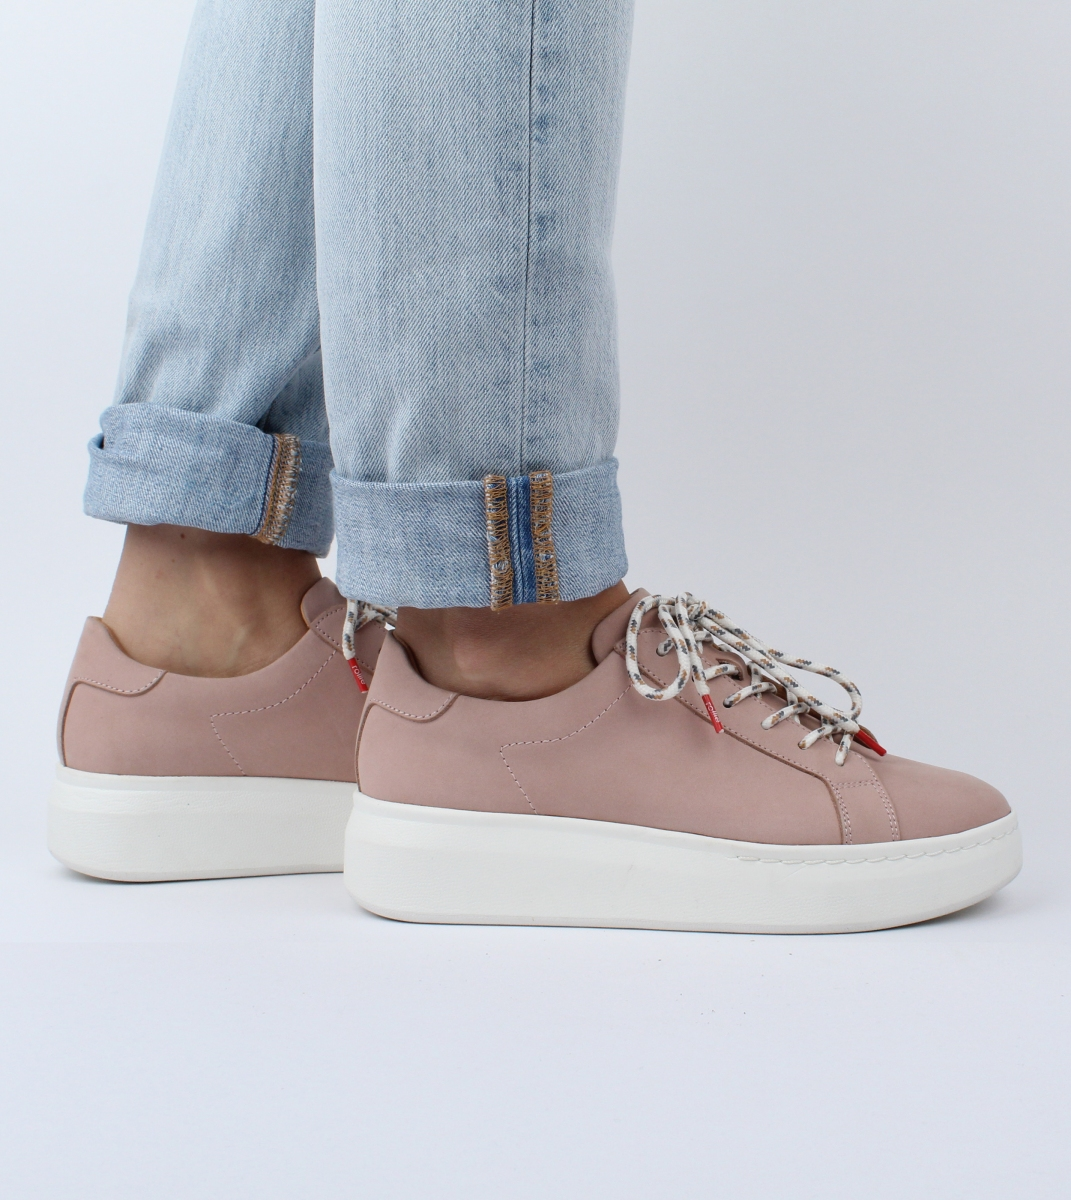 Rollie-City_Sneaker-Snow_Pink-M2